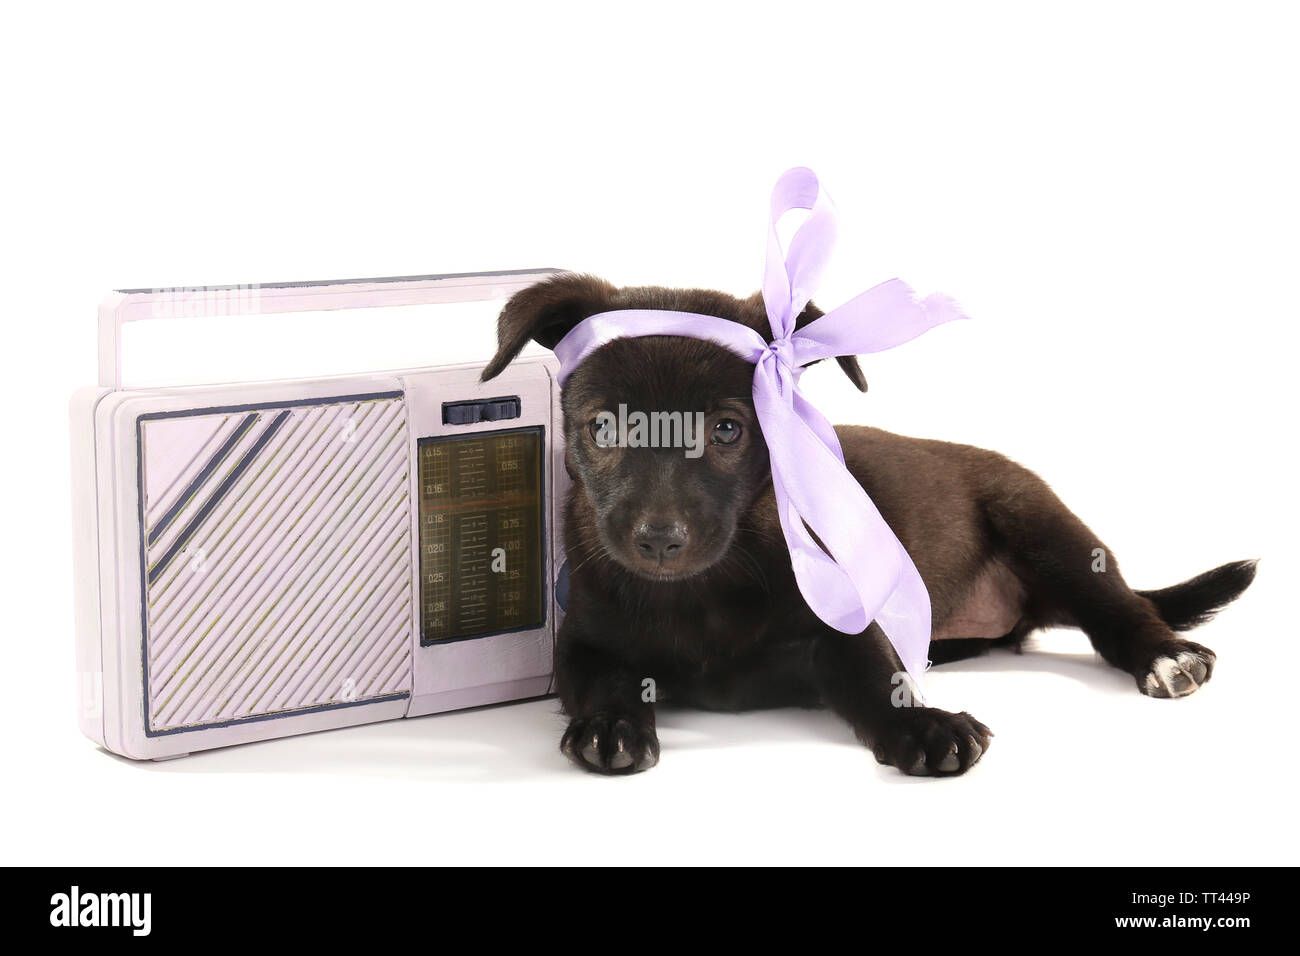 Black puppy playing with ribbon and radio beside it isolated on white - Stock Image